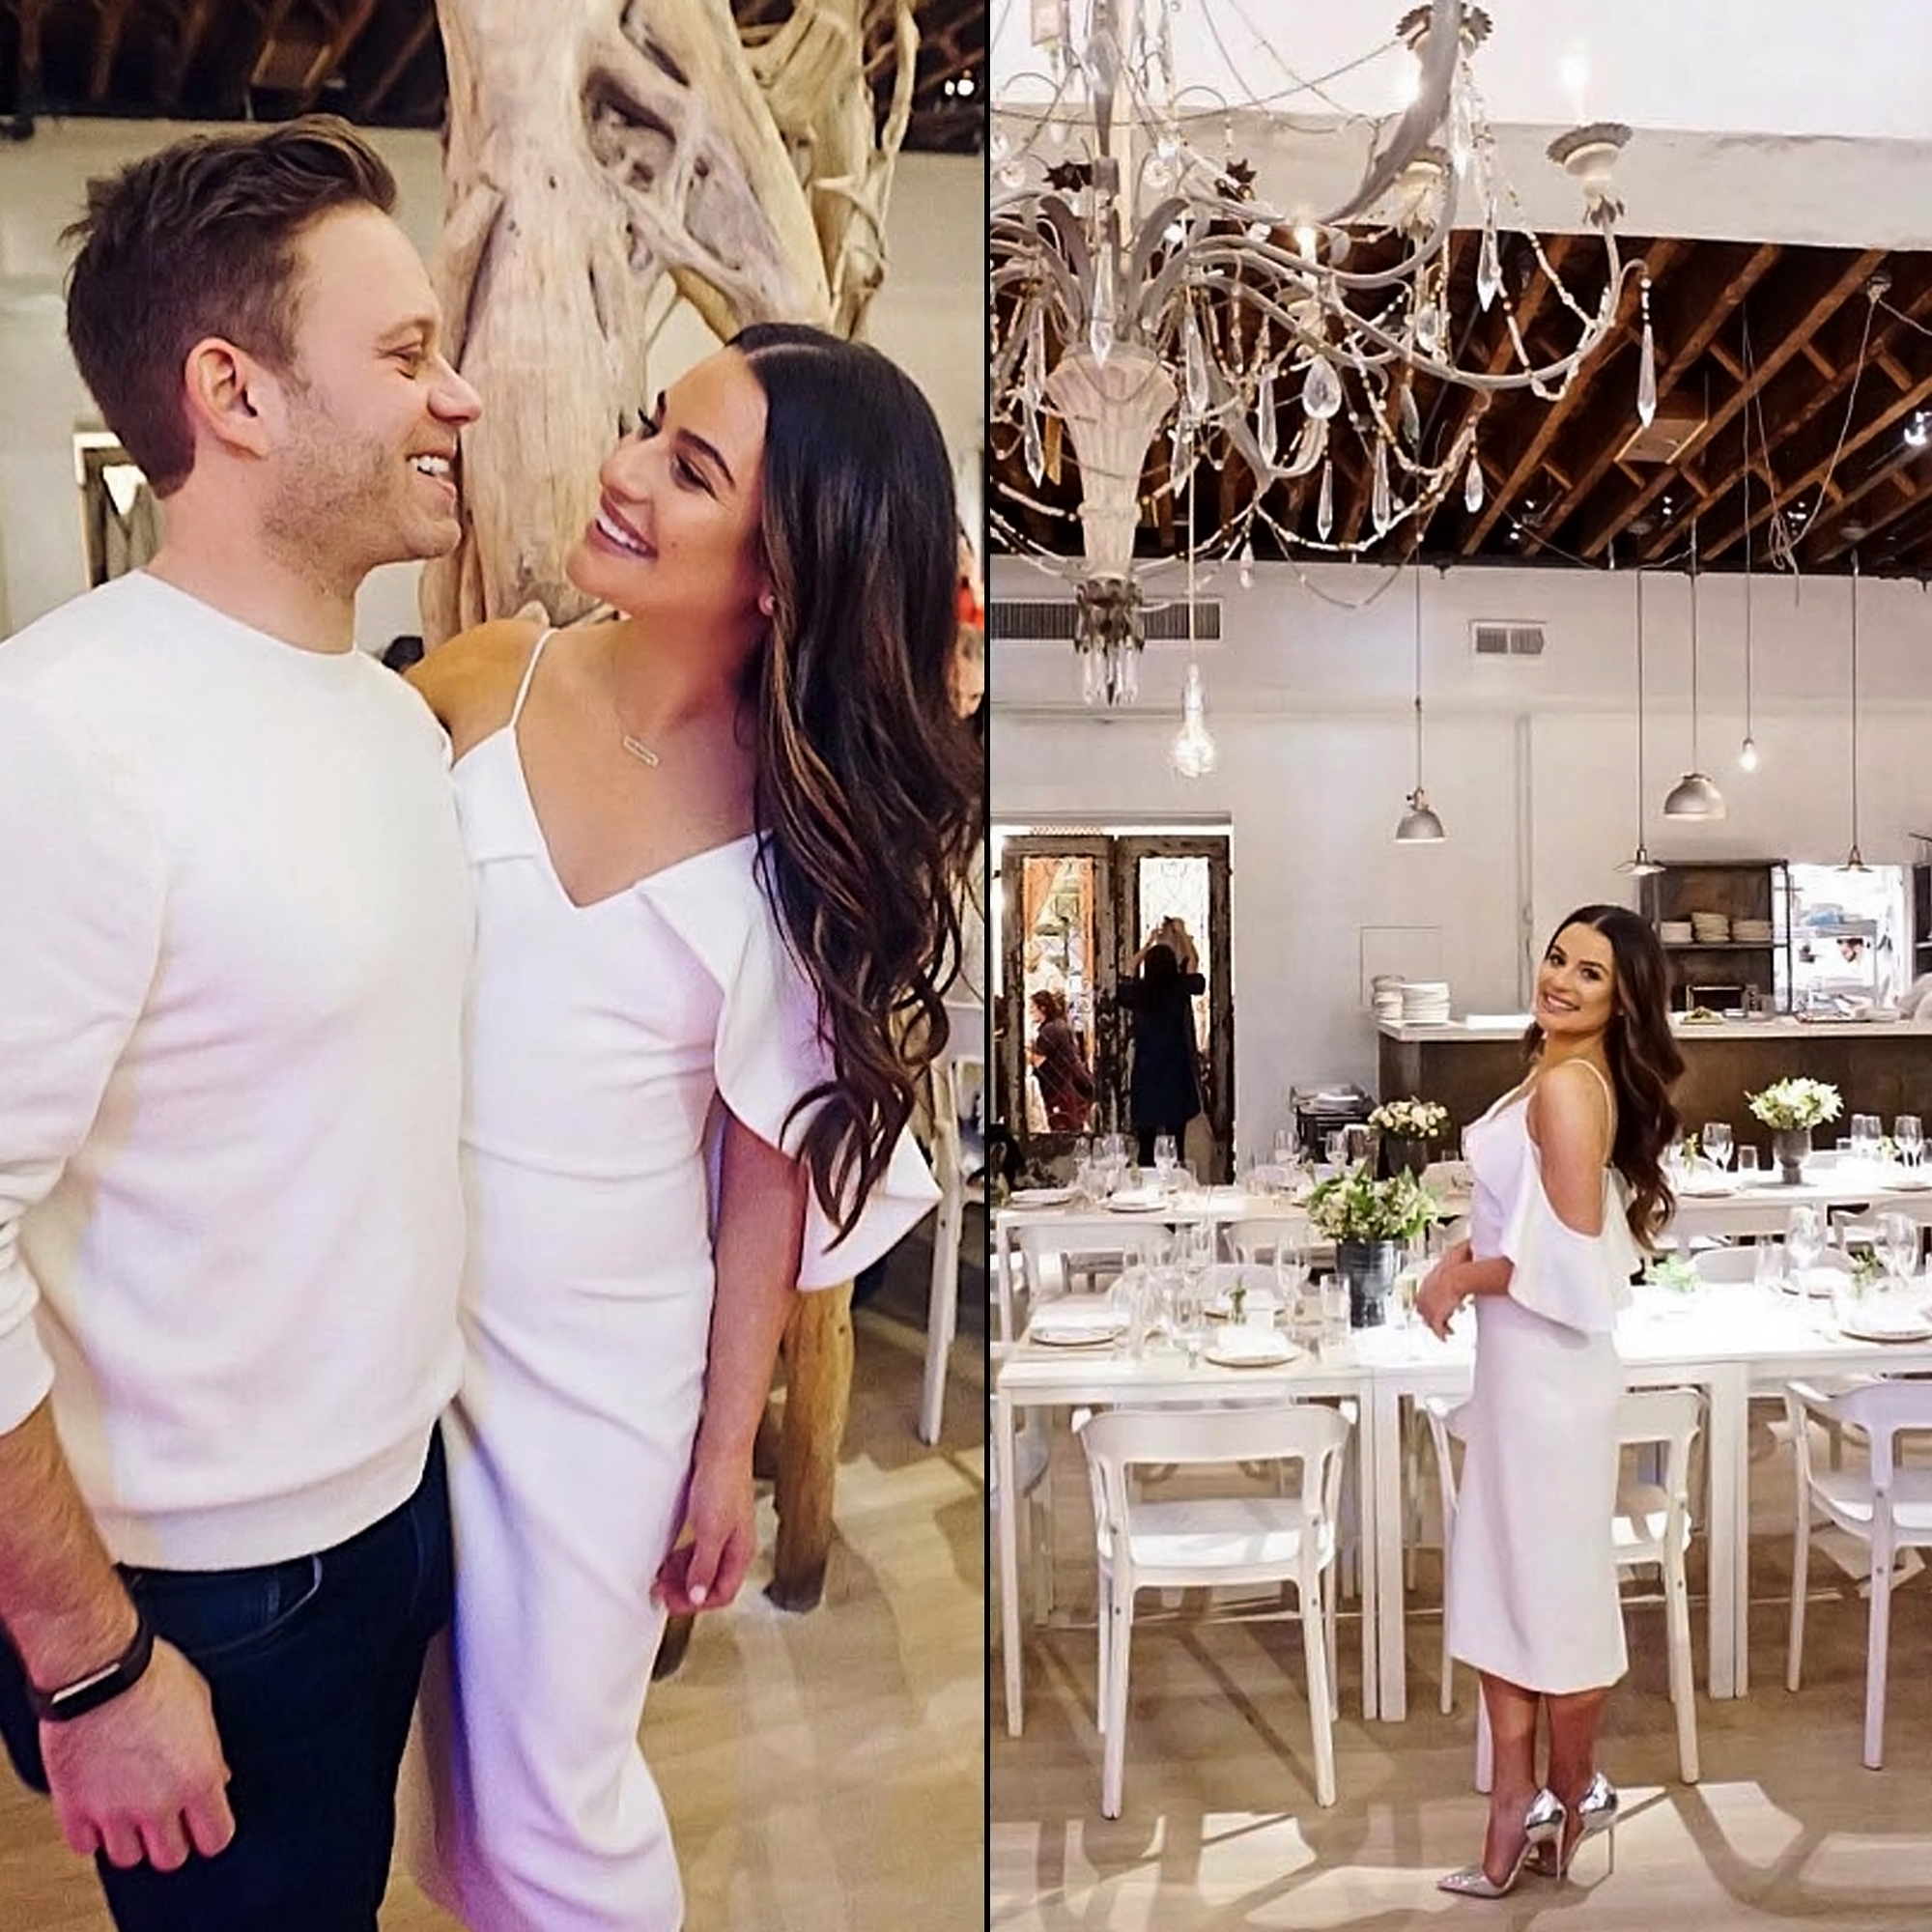 Lea Michele and Fiance Zandy Reich Bridal Shower - Gearing up for the big day! Lea Michele and her fiancé, Zandy Reich , celebrated their wedding shower over the weekend and shared multiple Instagram pictures of the milestone moments on Monday, December 24.